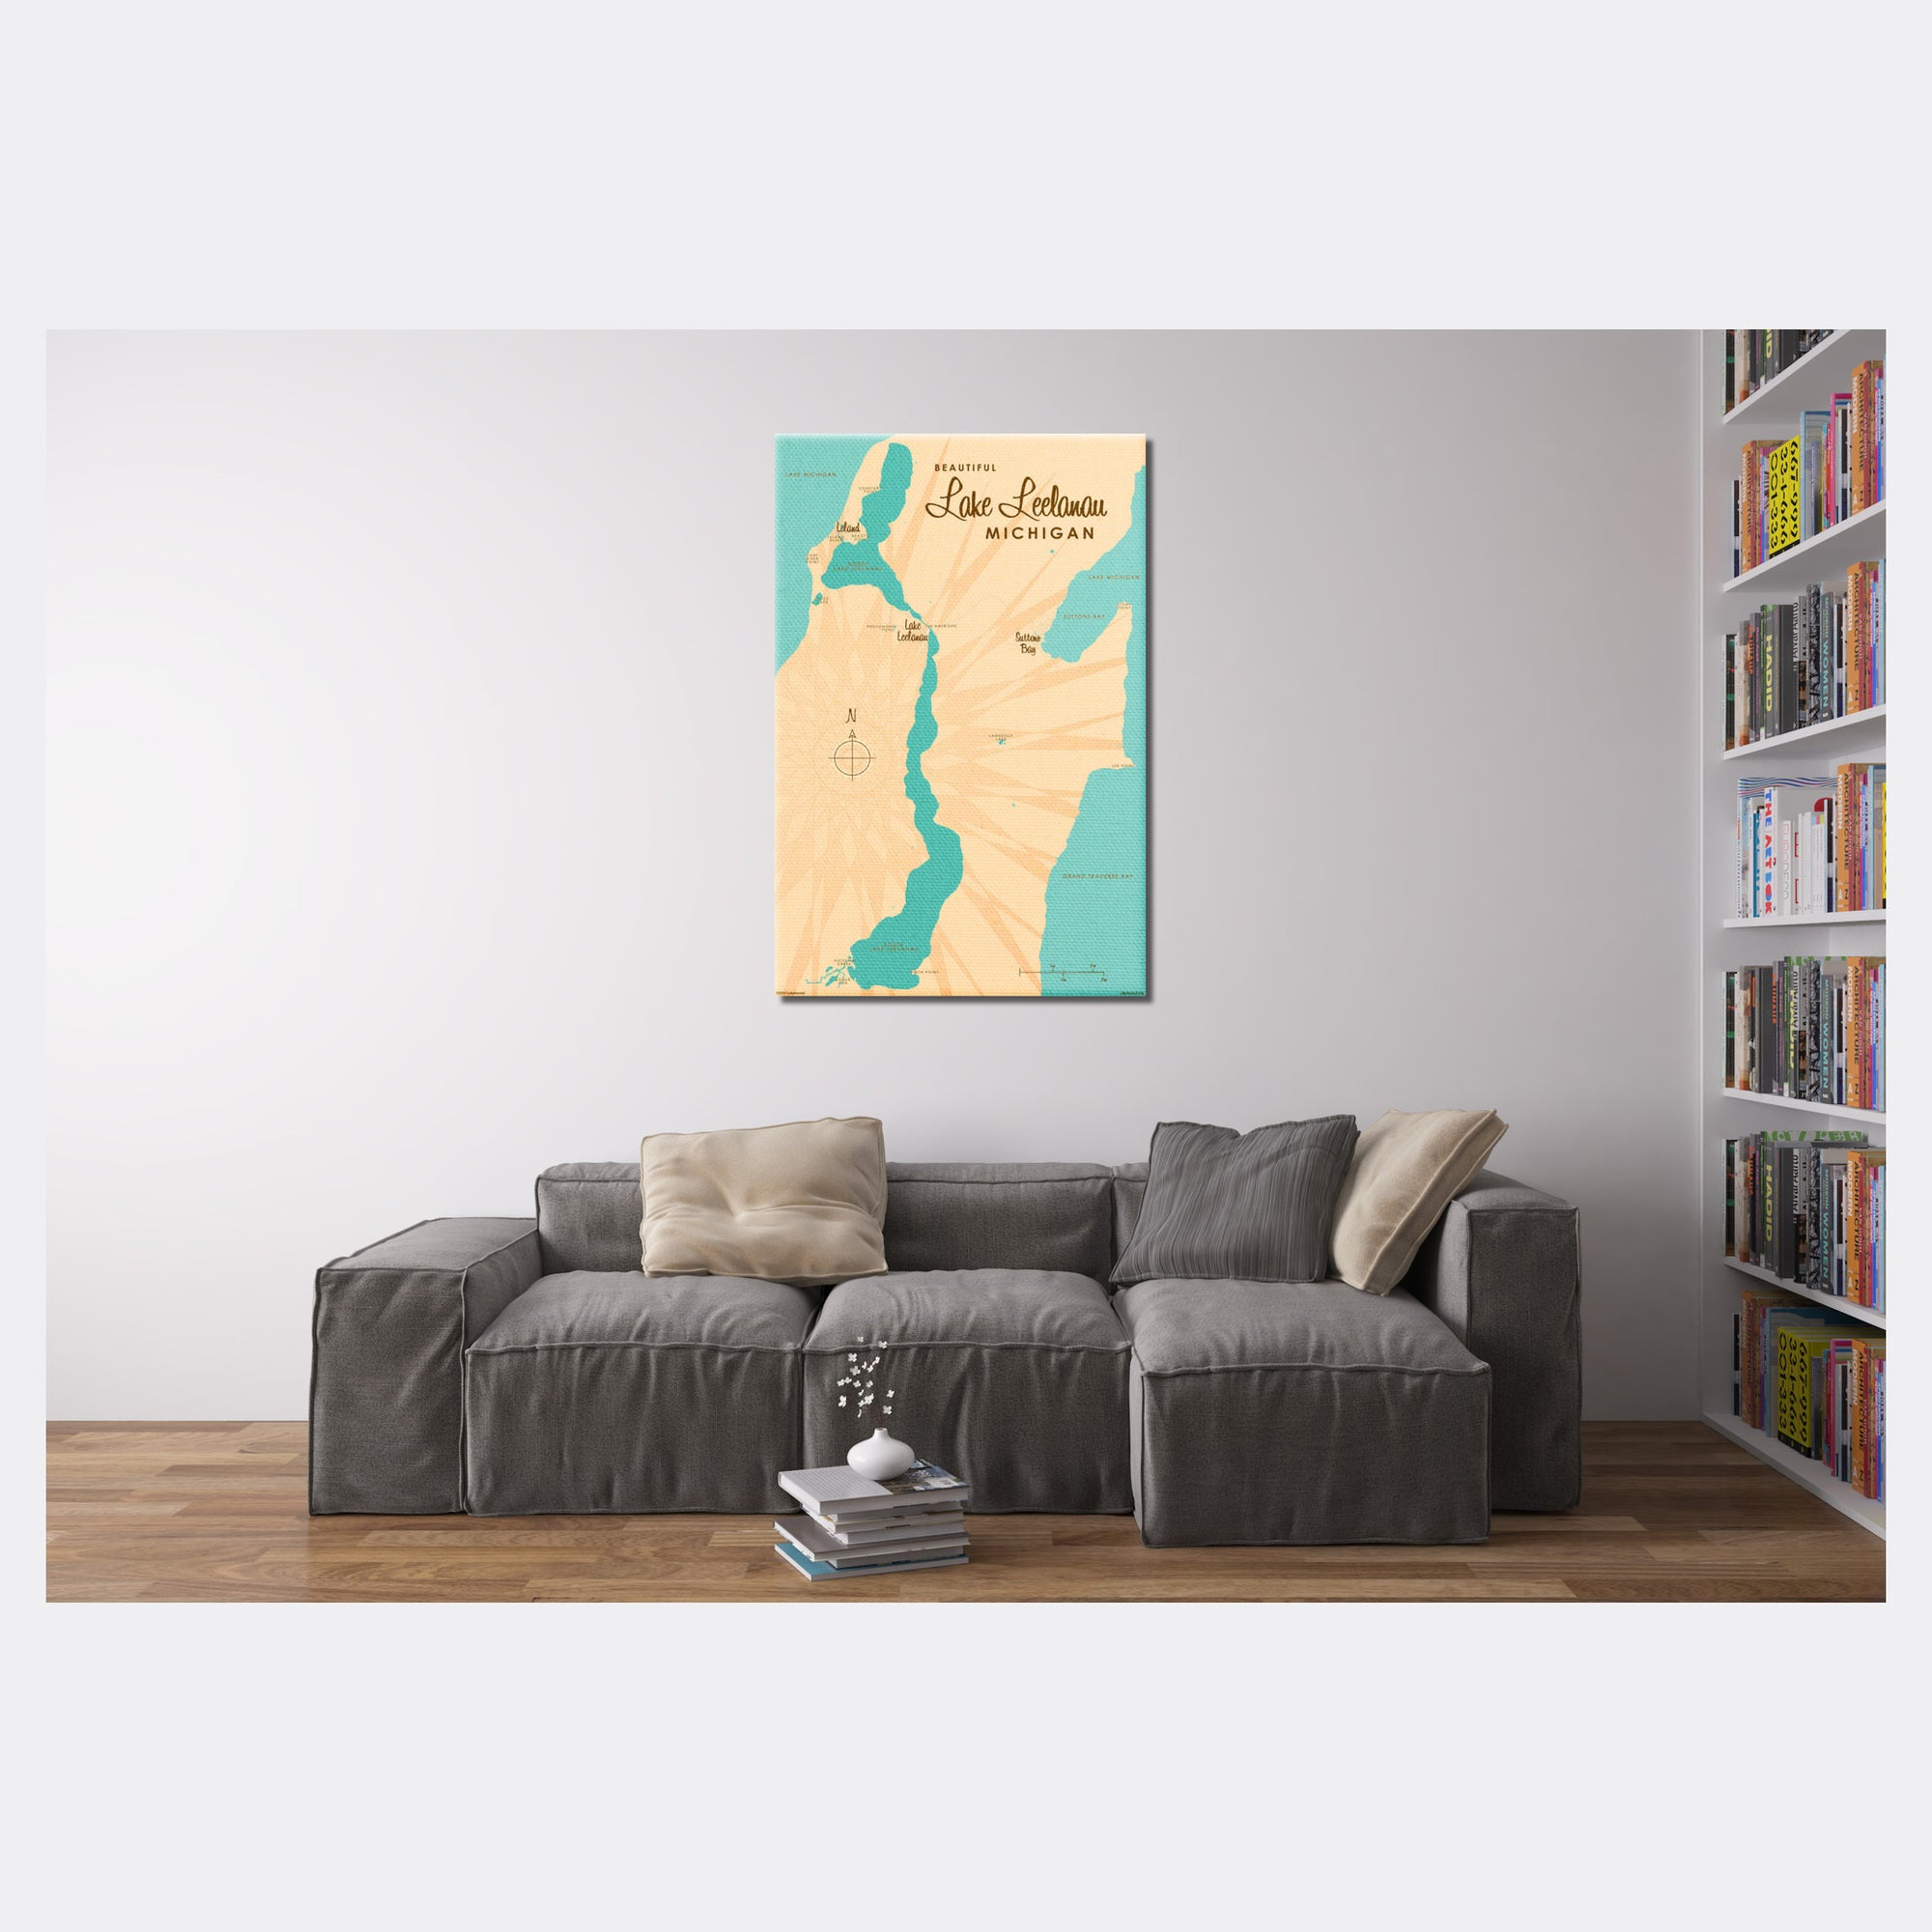 Lake Leelanau Michigan, Canvas Print